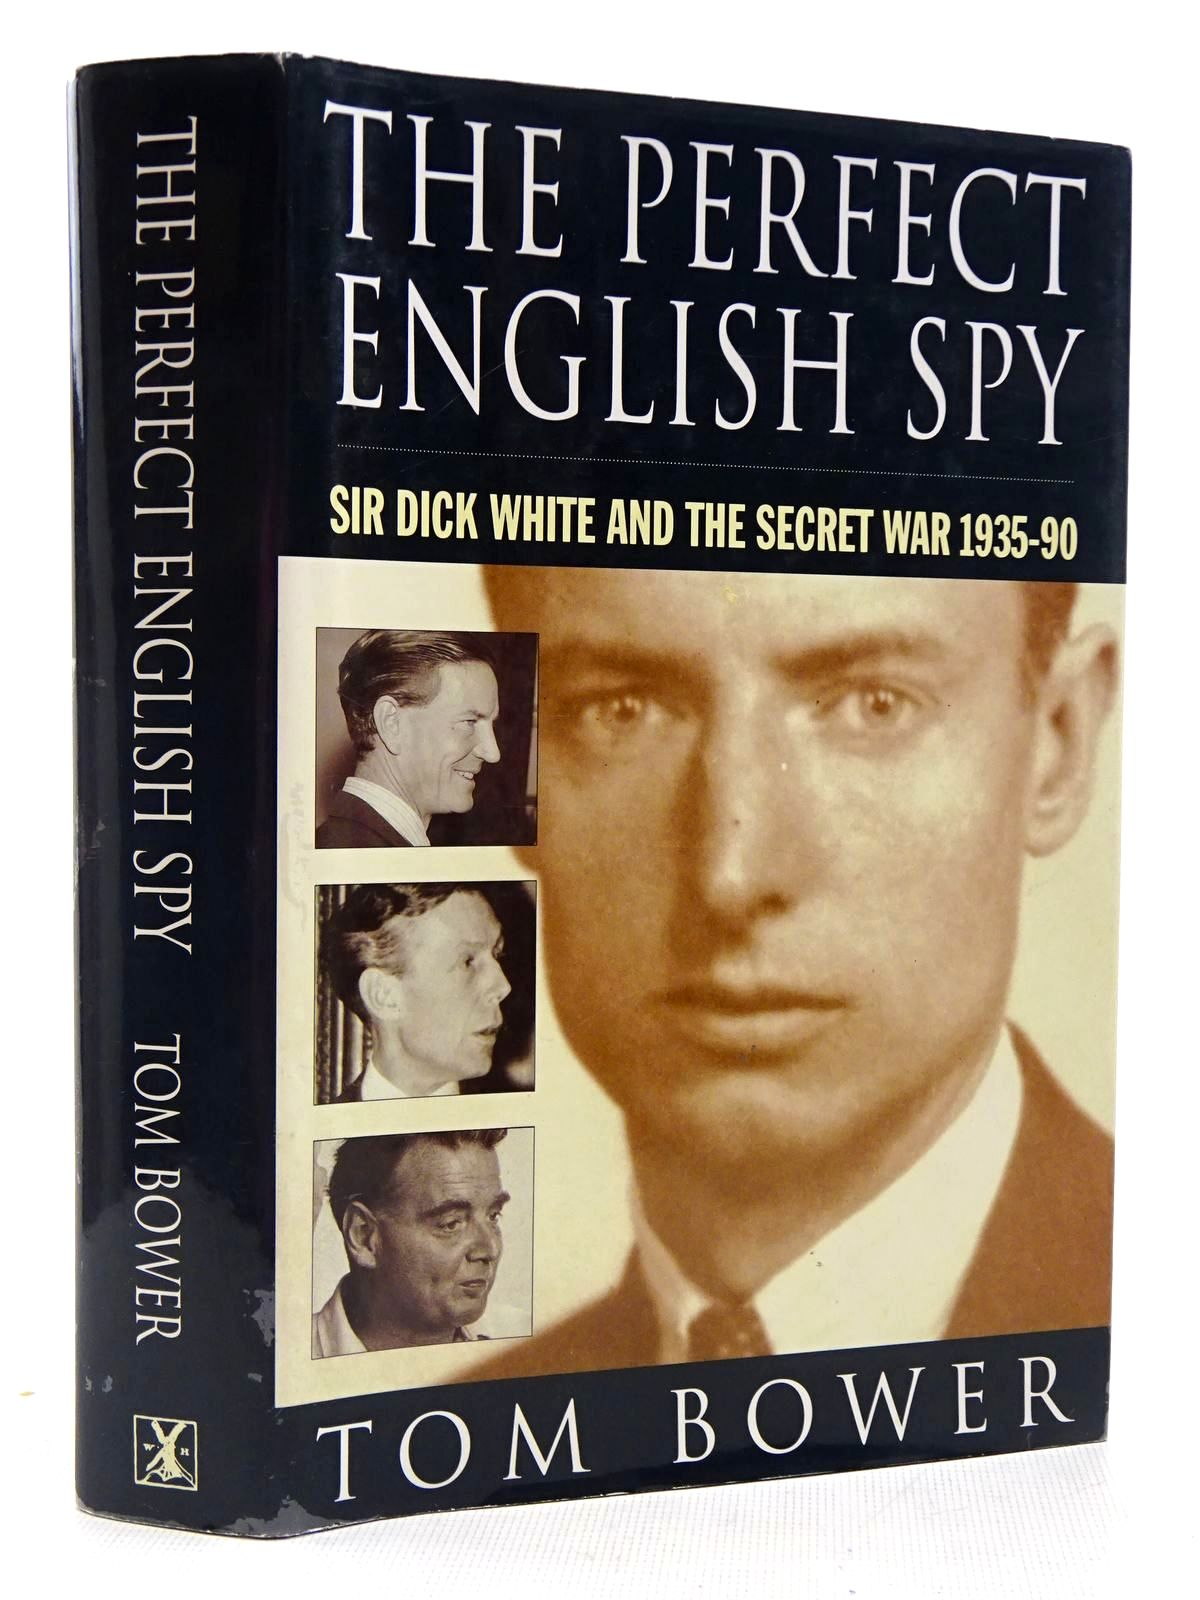 Photo of THE PERFECT ENGLISH SPY SIR DICK WHITE AND THE SECRET WAR 1935-90 written by Bower, Tom published by Heinemann (STOCK CODE: 2129182)  for sale by Stella & Rose's Books